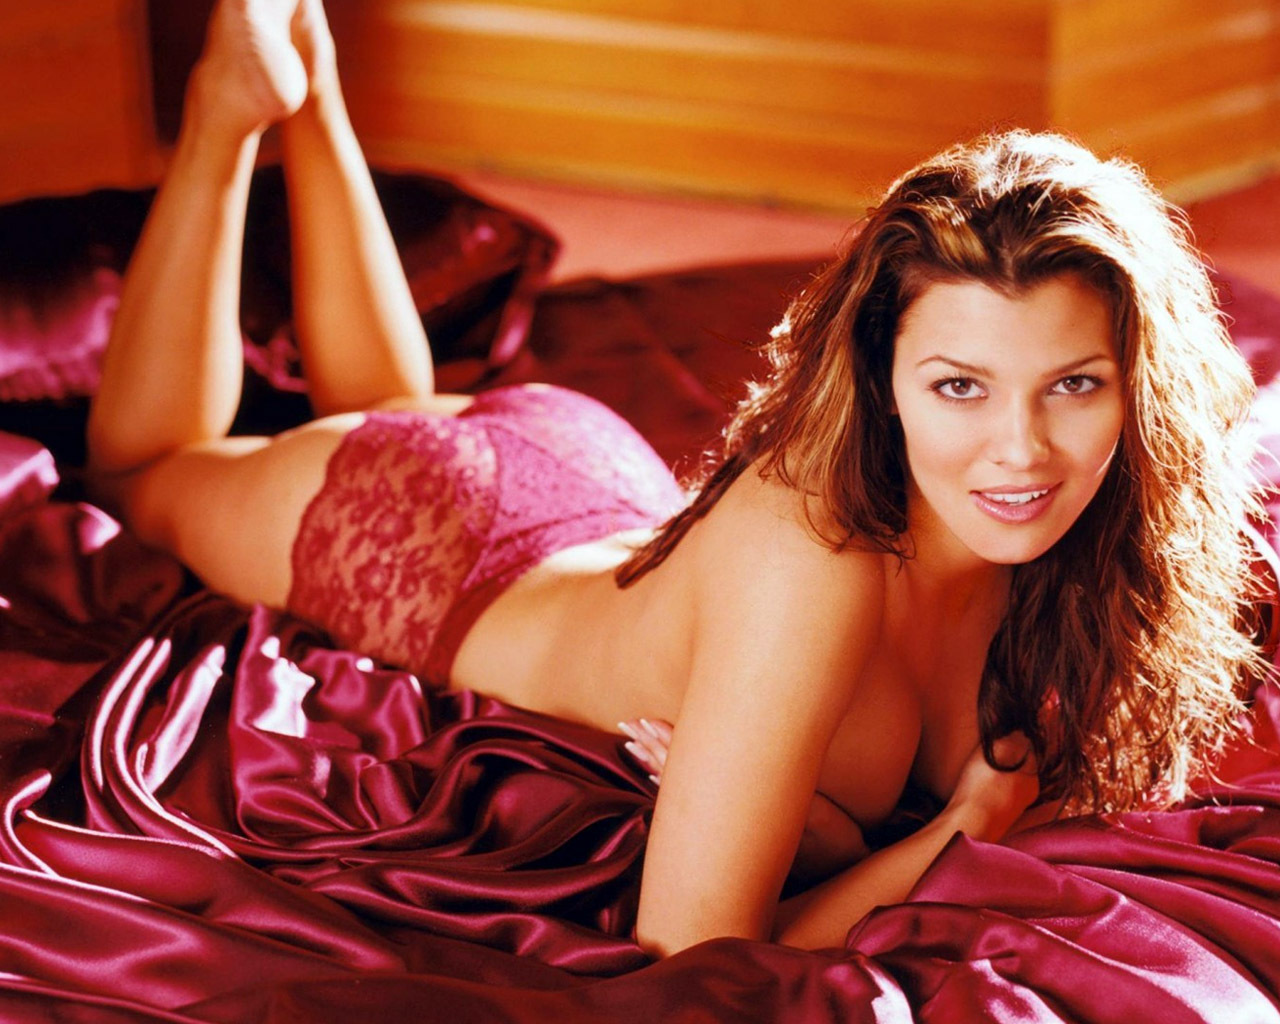 Related pictures famous landry allbright - Ali Landry 1280 X 1024 Wallpaper